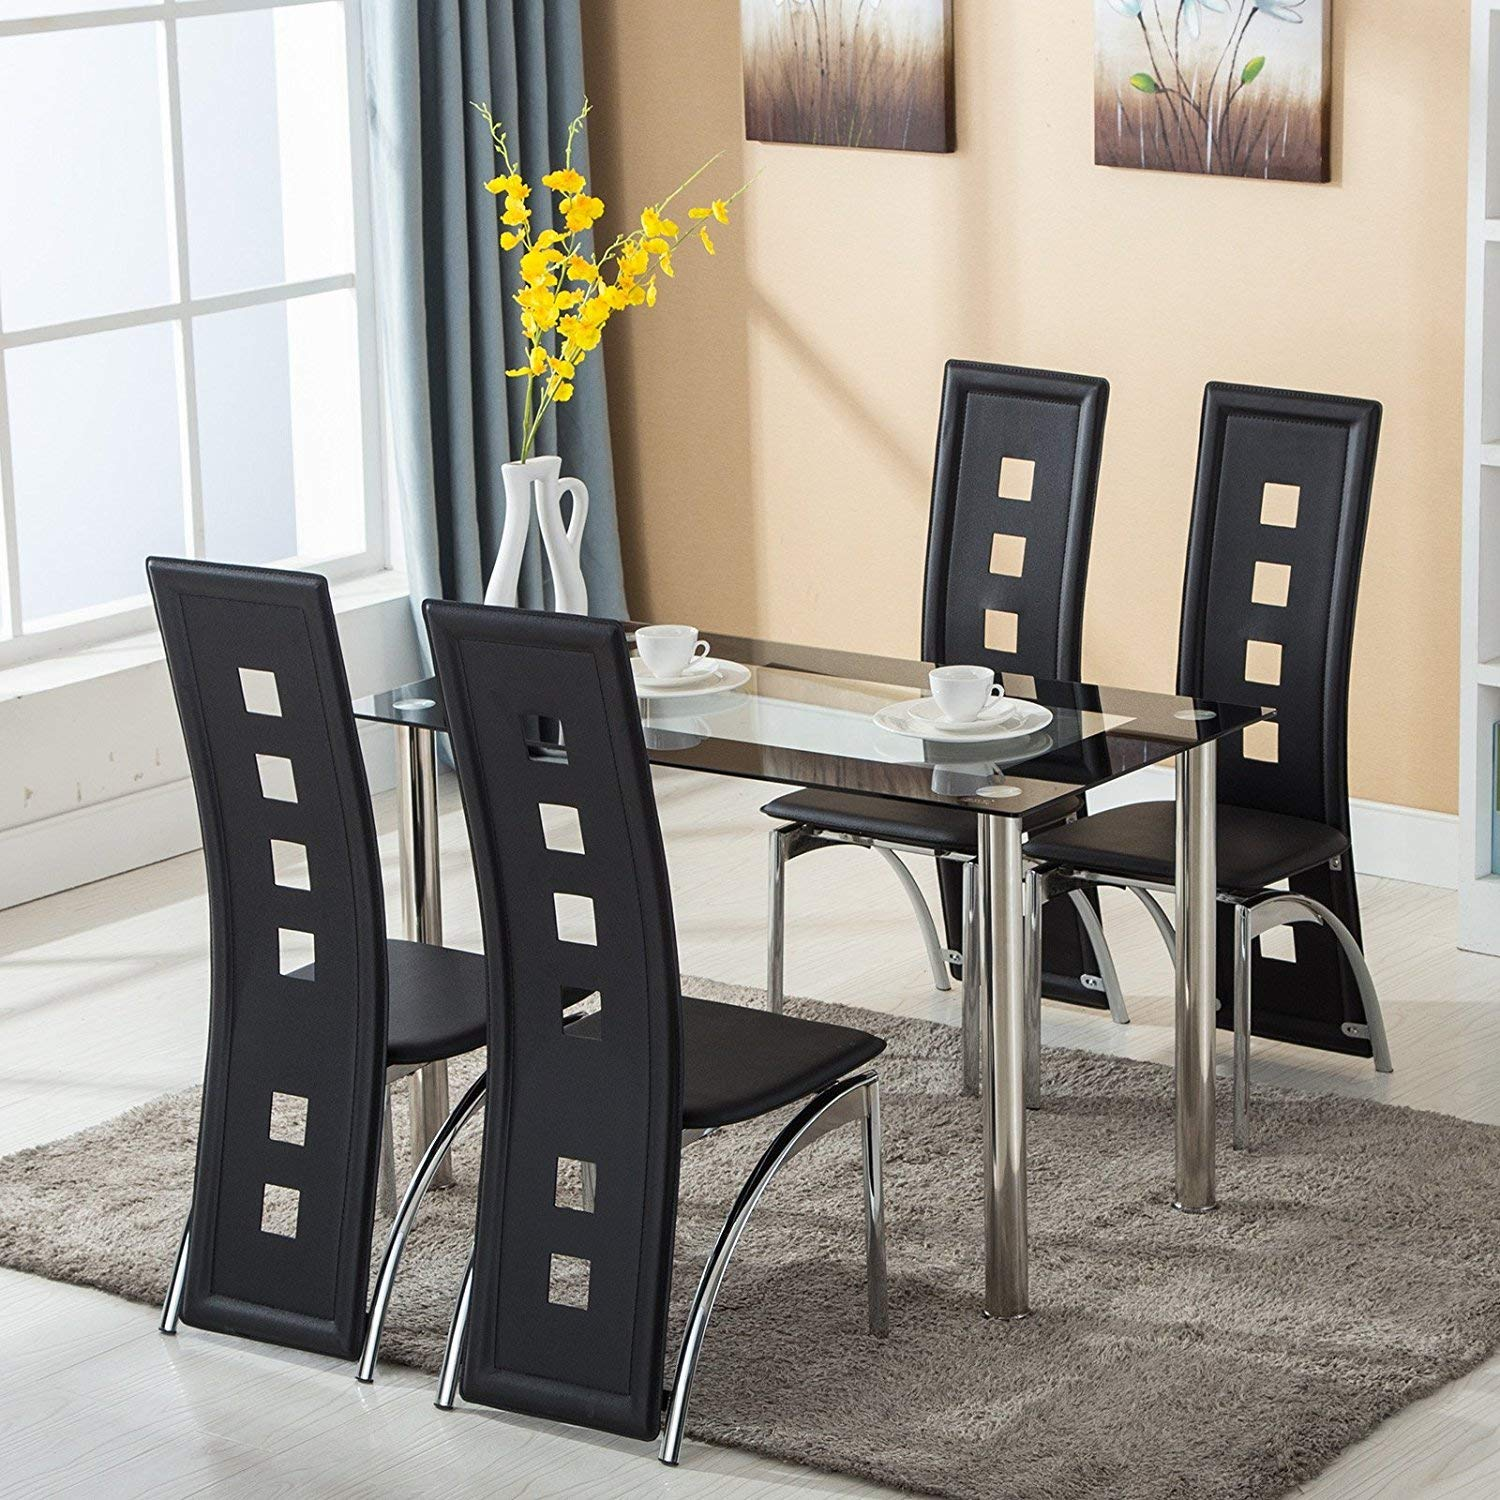 Factory Price Heavy Duty Dining Tables Set Glass Top Table And 4